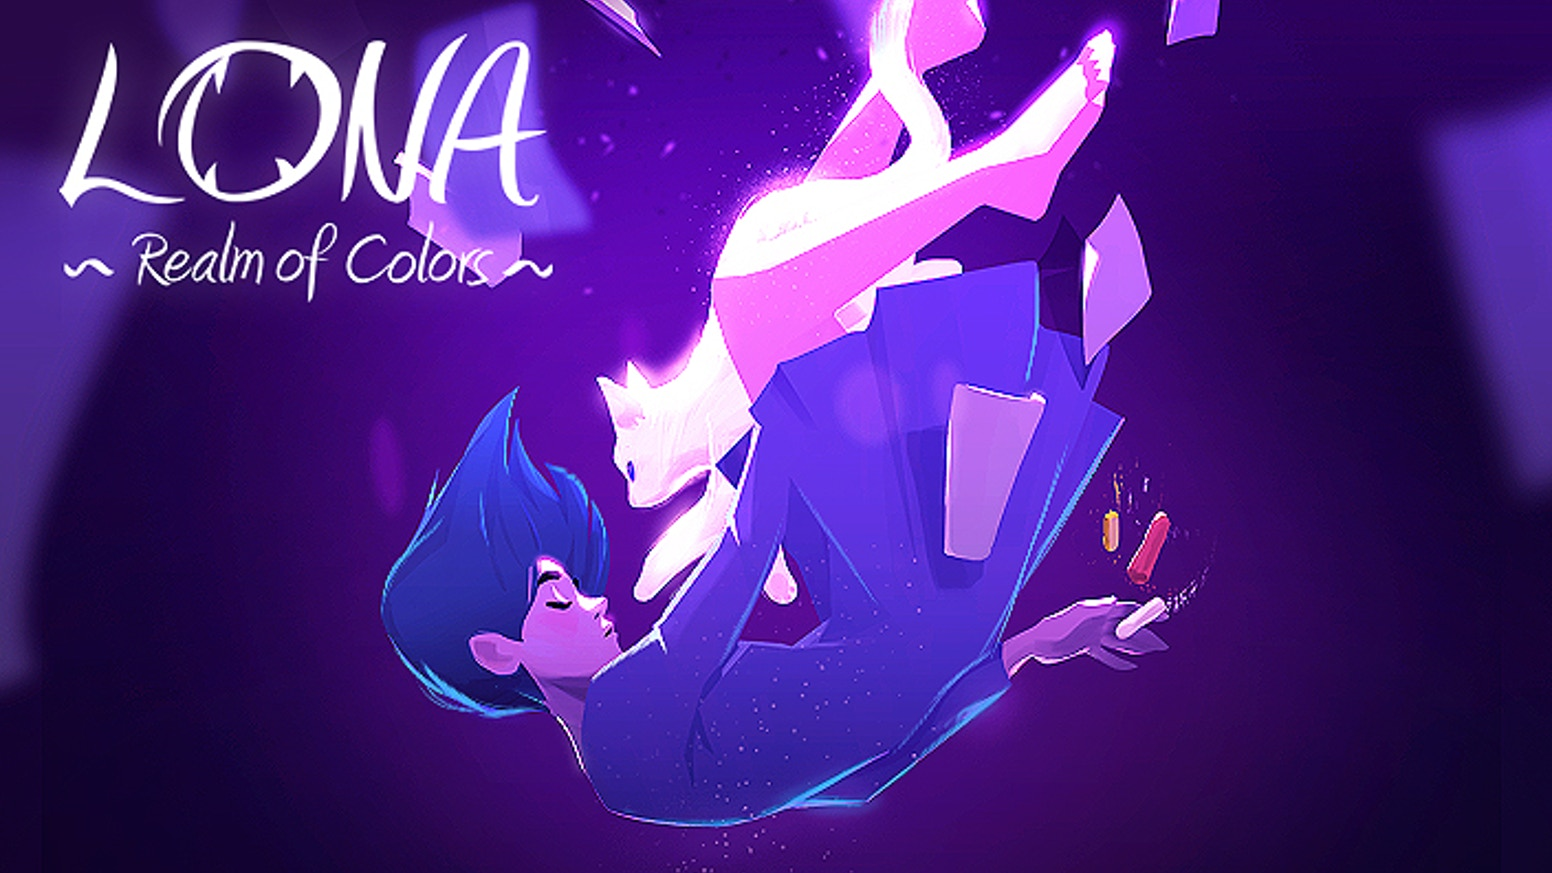 Lona Realm of Colors Free Download